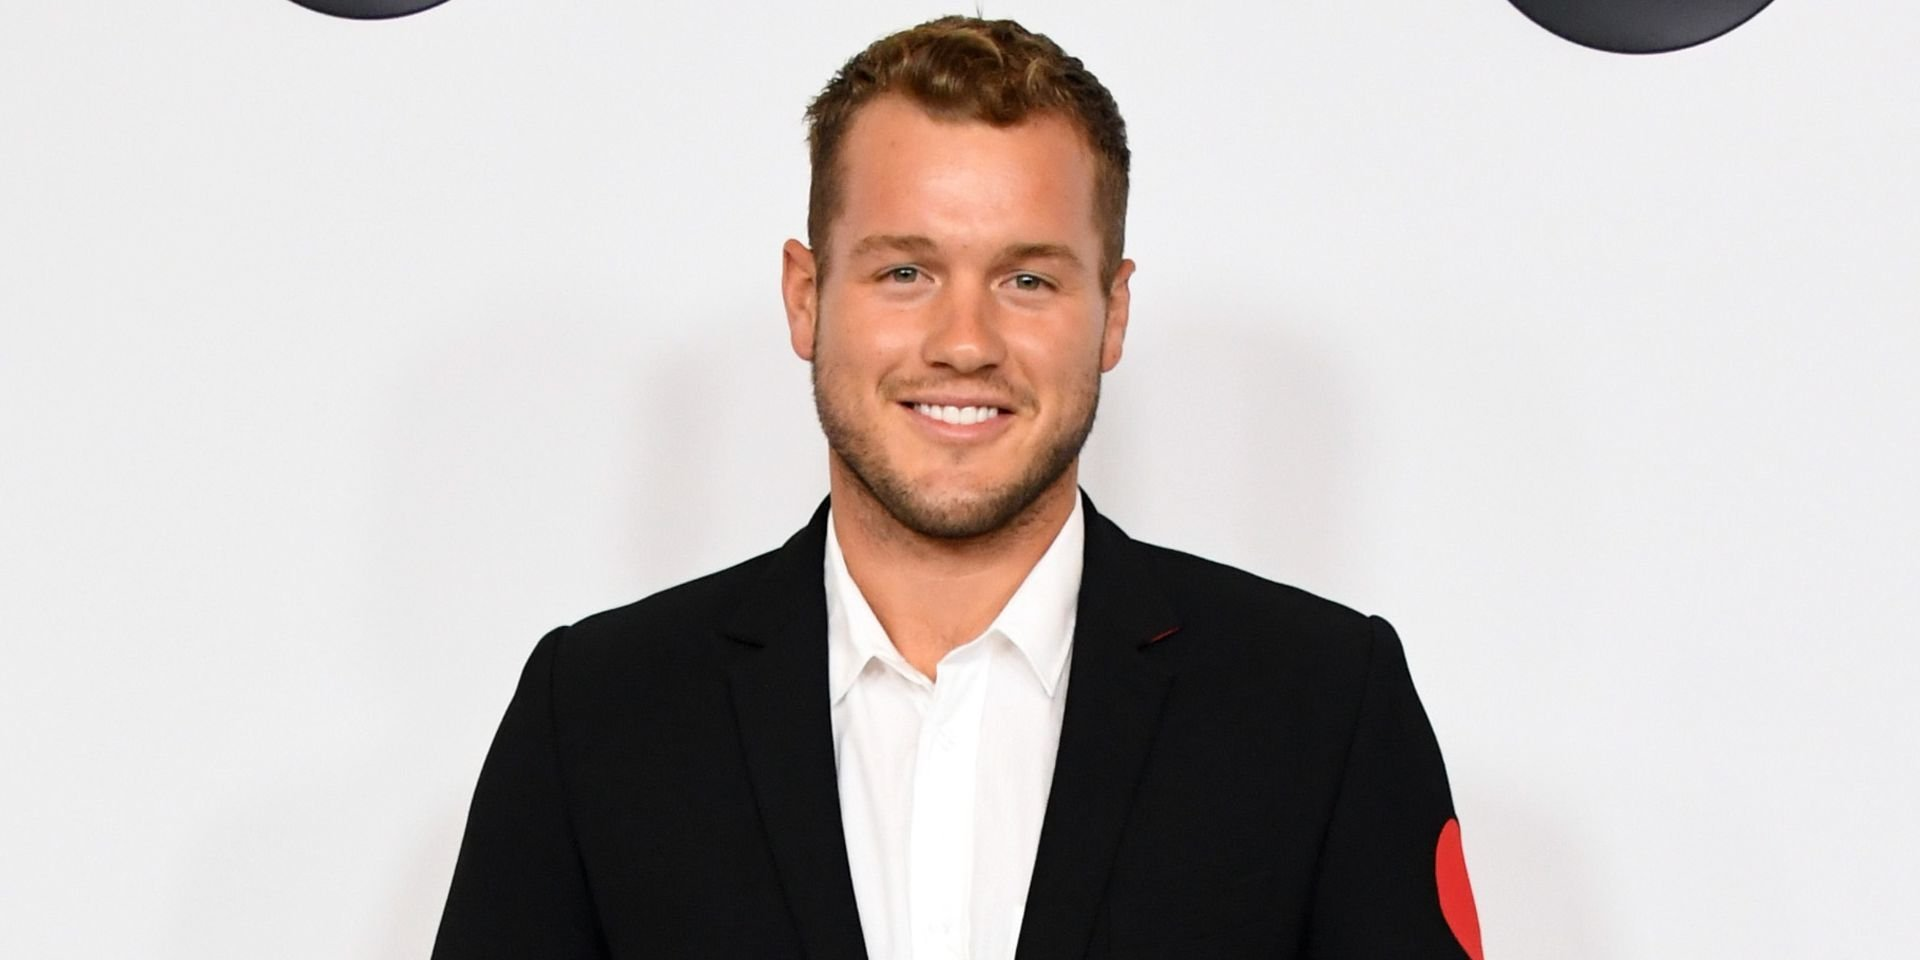 Watch Bachelor Colton Underwood Learn About Sex From Jimmy Kimmel